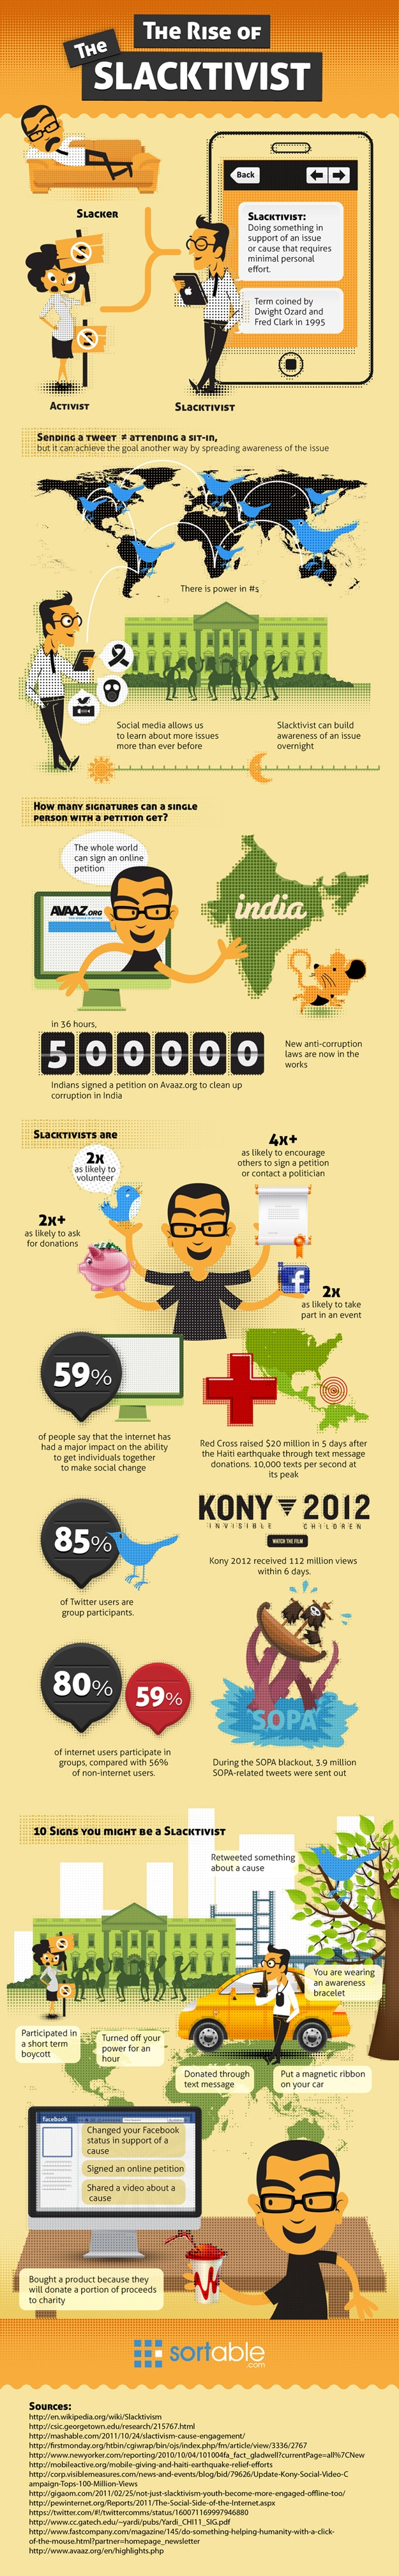 The Rise Of The Slacktivist [Infographic]